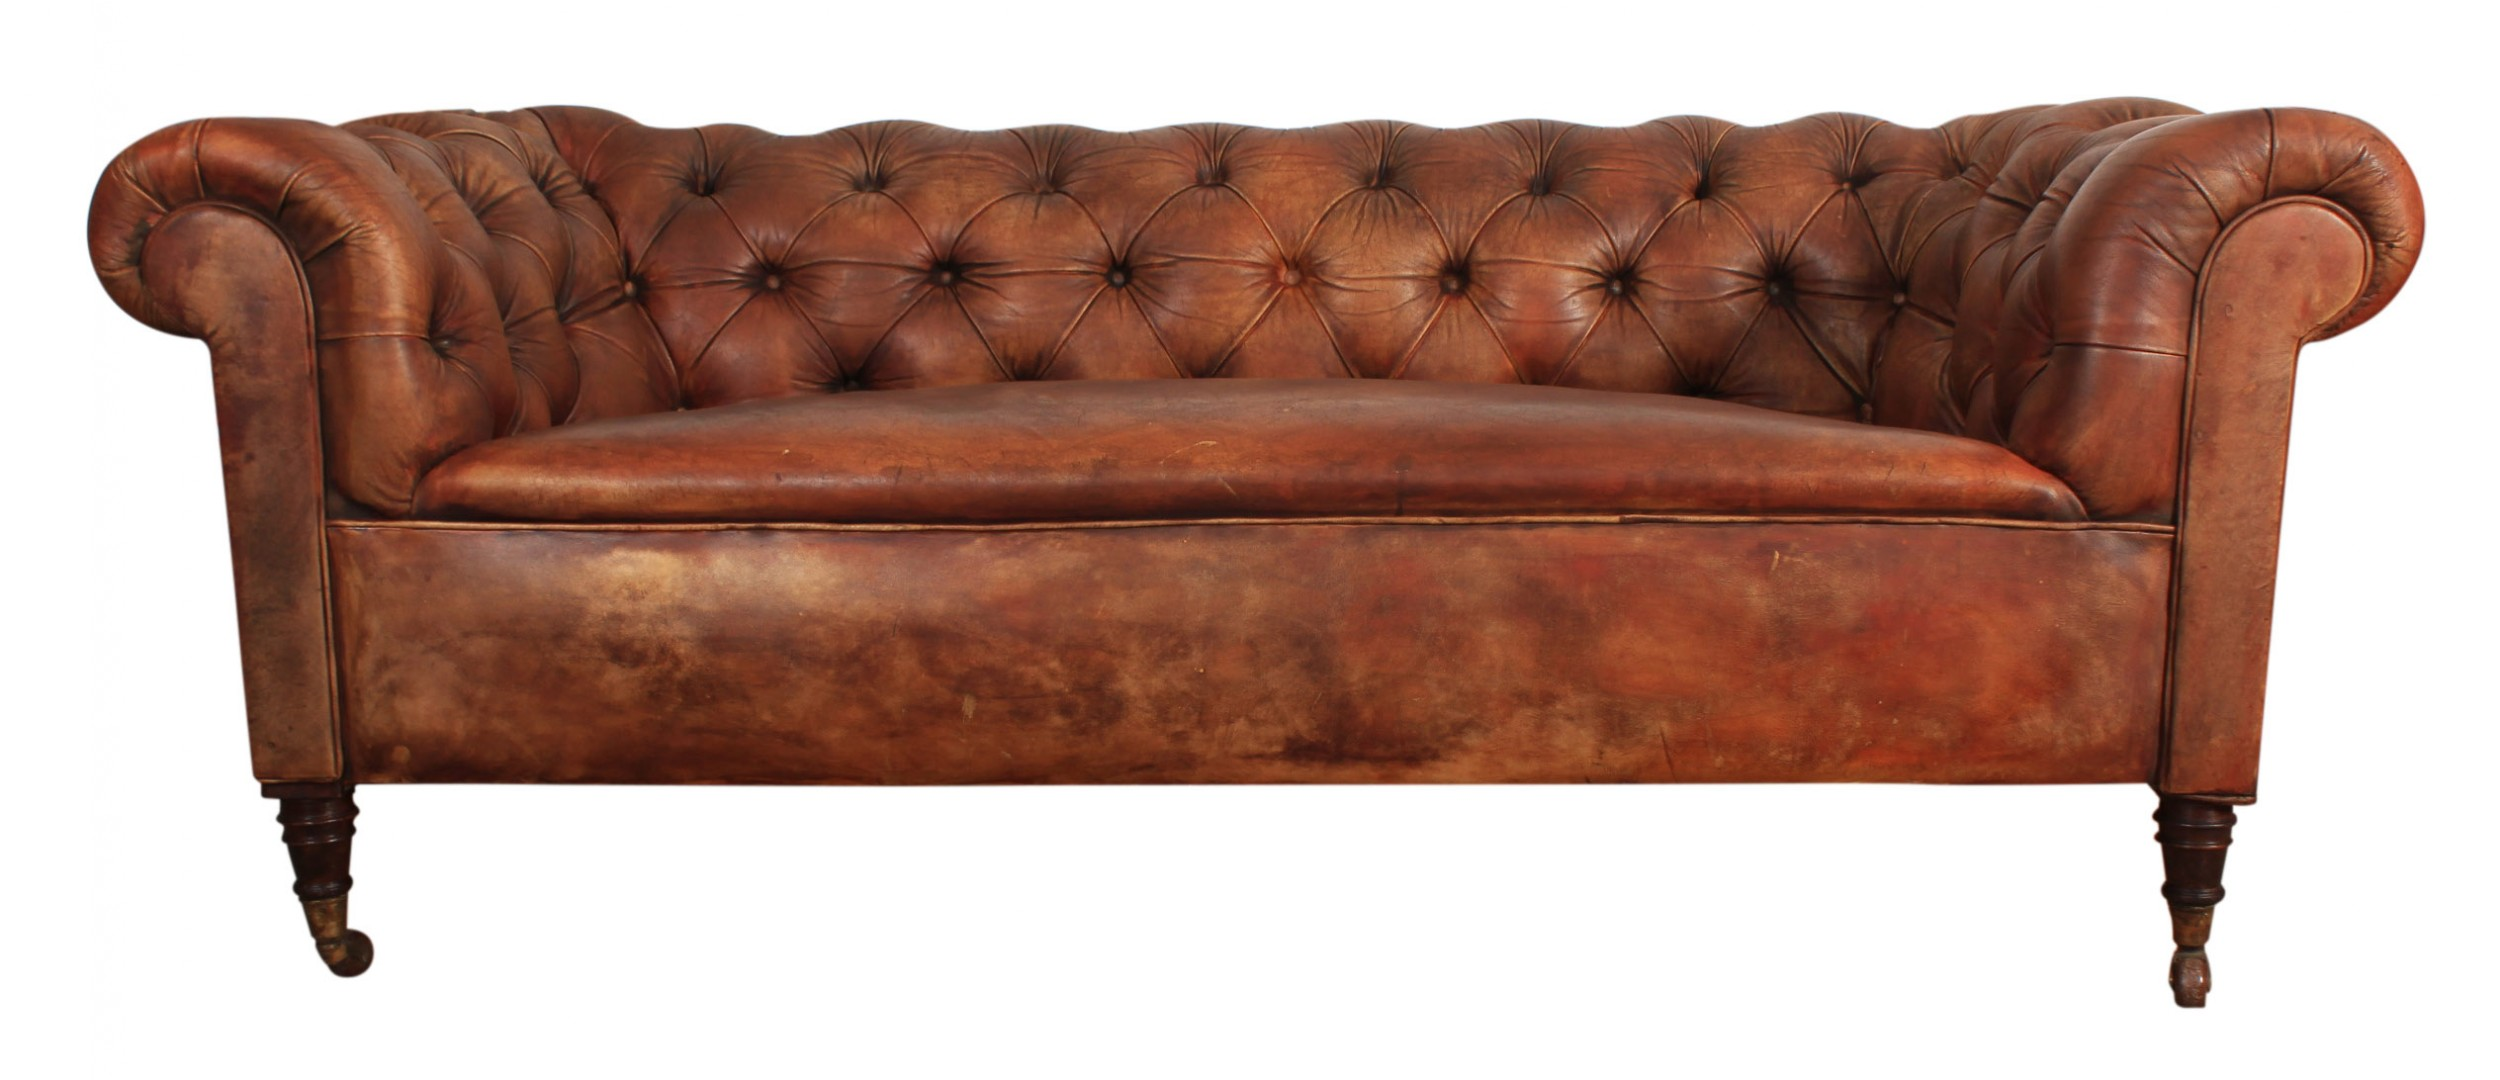 Chesterfield Sofa Online Uk Genuine Victorian Antique Leather Chesterfield Sofa 603733